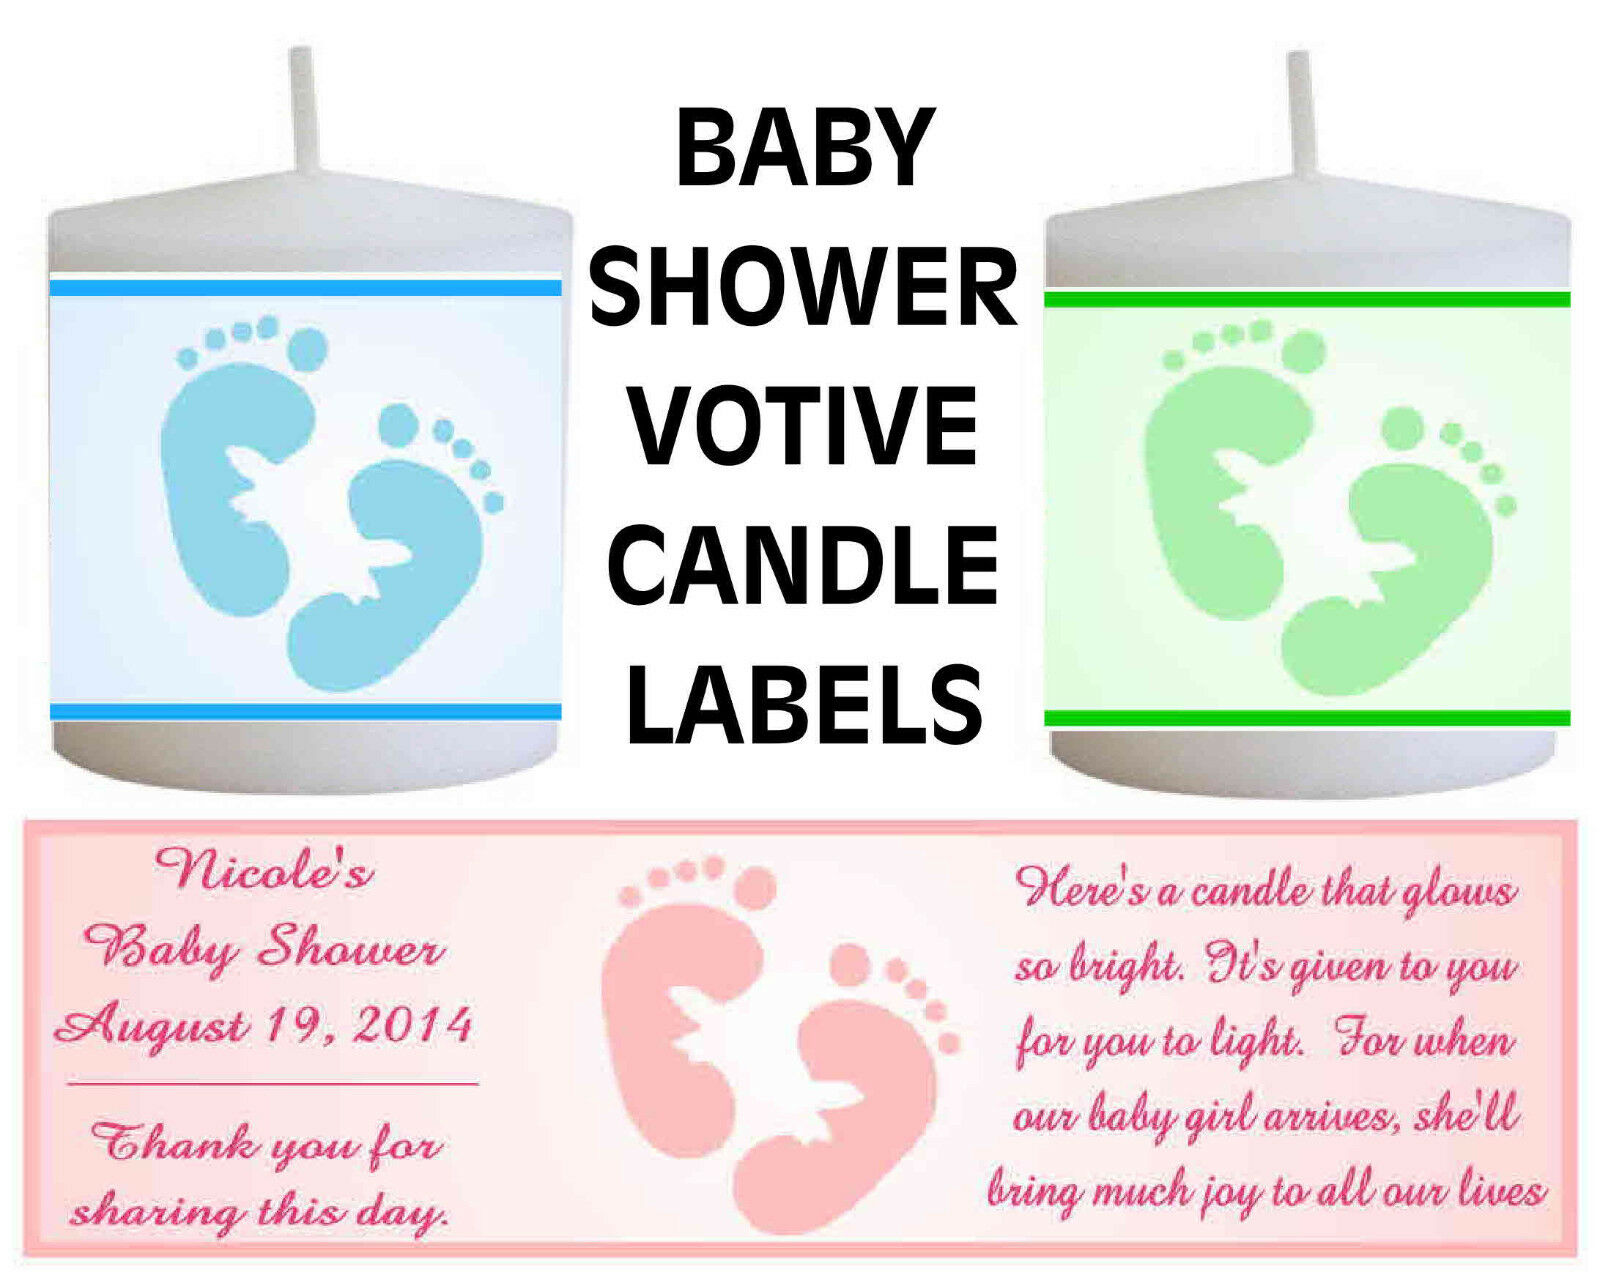 14 Personalized Baby Shower Favors Votive Candle Labels 399